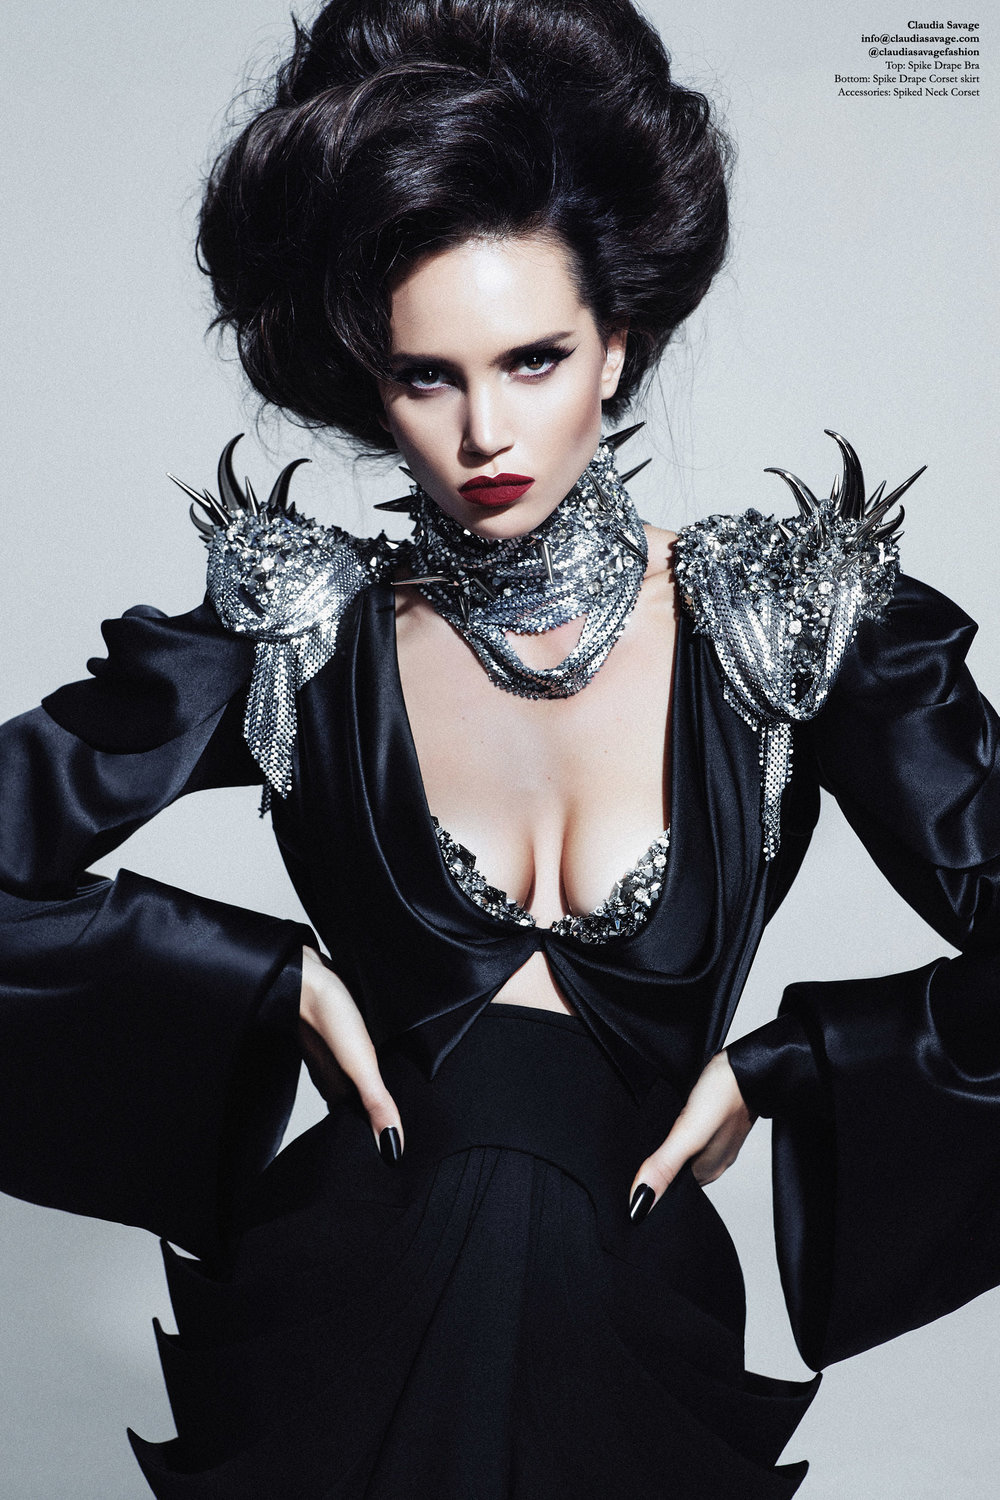 Model wears a black draped silk satin top with Swarovski encrusted exposed bra. The silk top has piked and metallic mesh draped shoulder pads which have been hand stitched with Swarovski Elements. This is worn over a draped wool skirt which features sculptural spiked cowls draped from an under-bust corset. The skirt is fully lined in silk satin and falls into soft folds at the knee. The neck corset features silver spikes and draped metallic mesh which has also be hand stitched with thousands of Swarovski crystals.